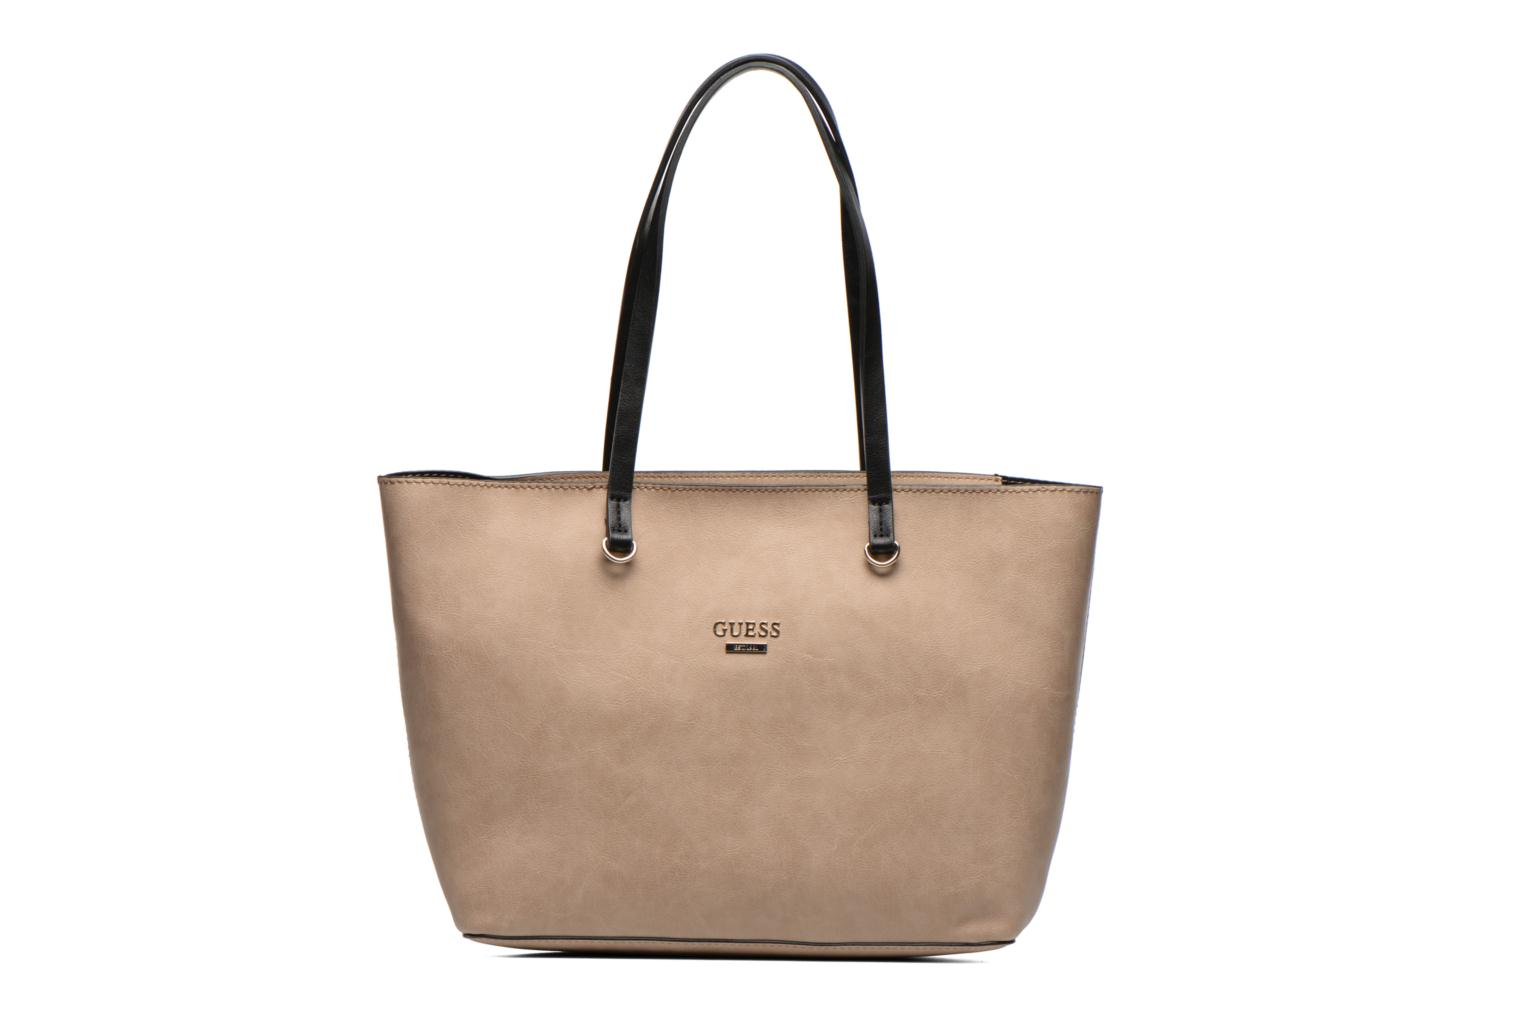 Handtassen Audrey 2in1 Tote by Guess